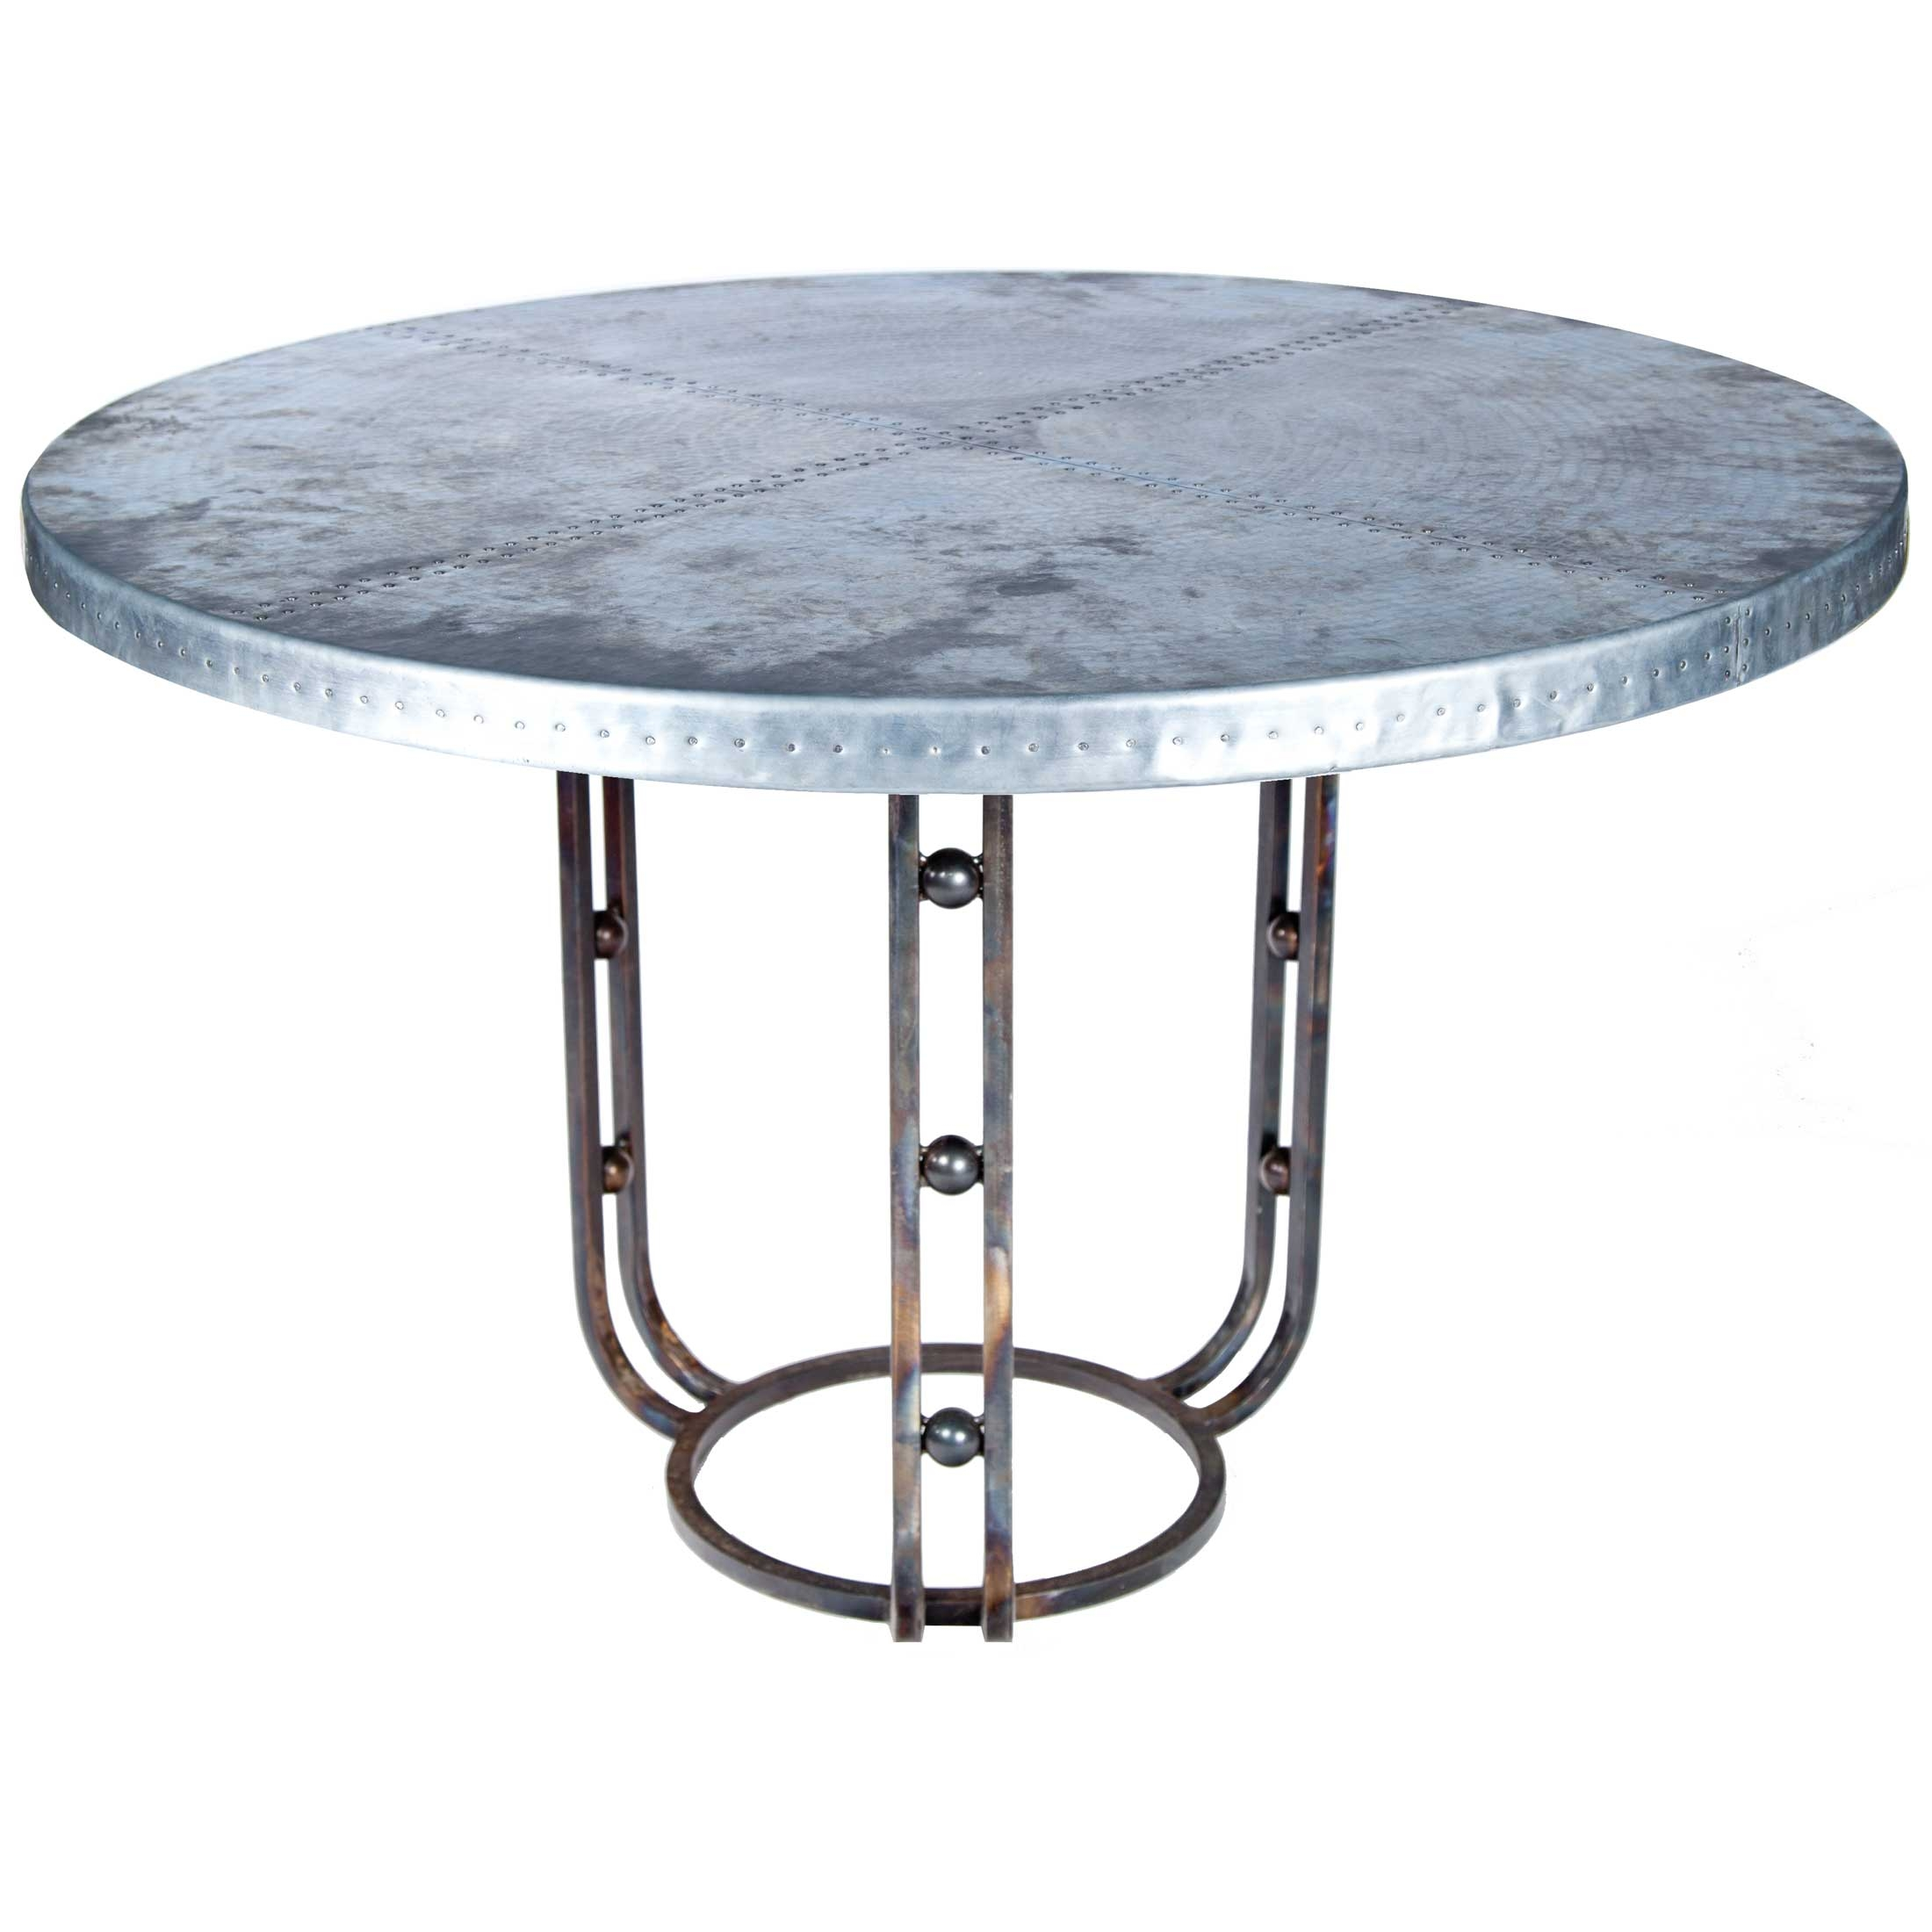 Zinc Dining Table French Clayton Iron Dining Table With 54 Round Hammered Zinc Top